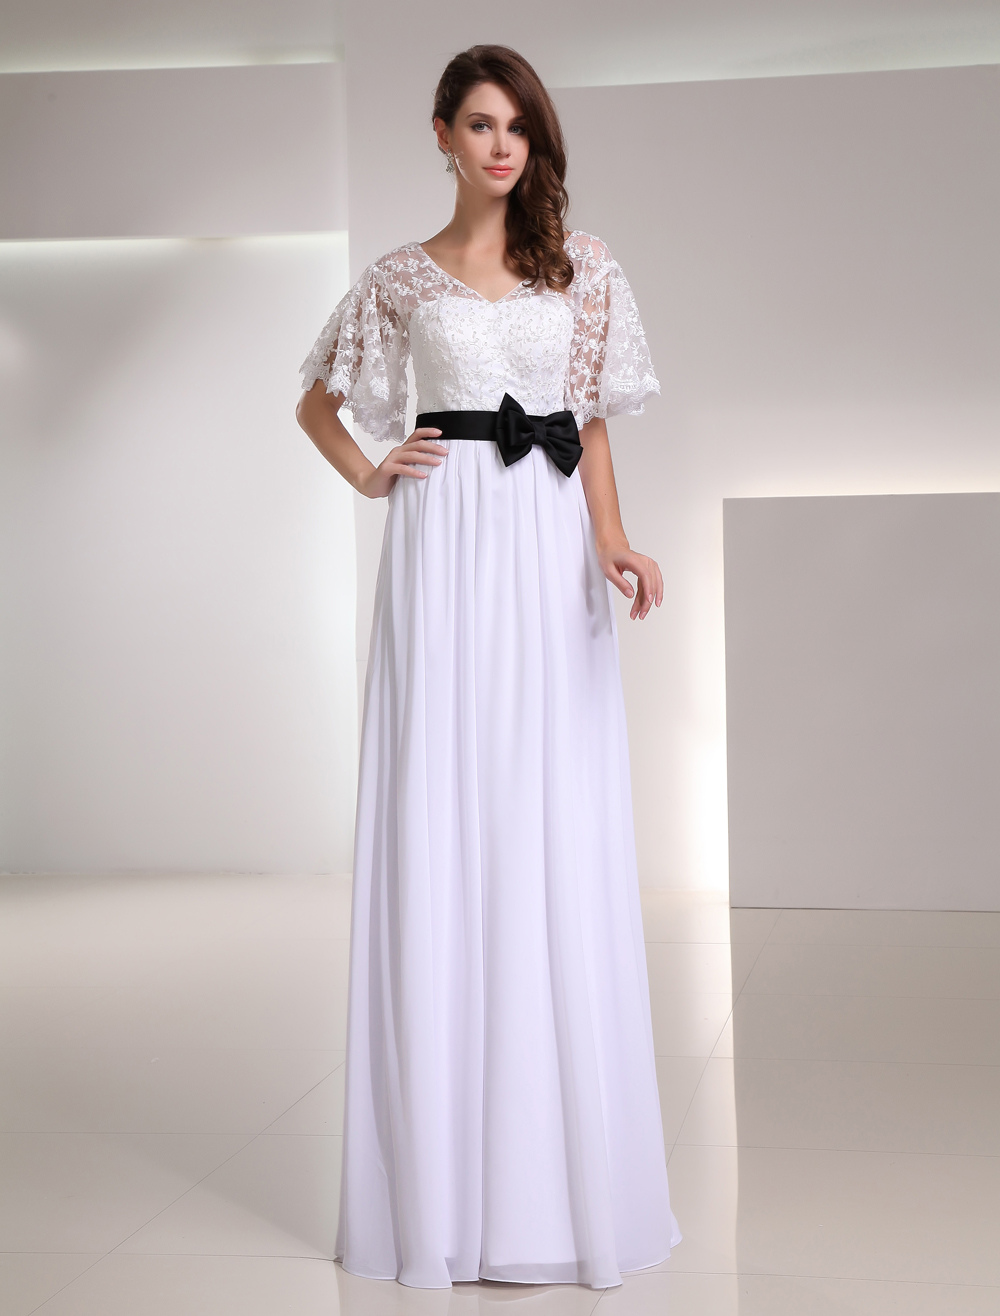 Vintage Inspired Titanic Style Dresses for Sale